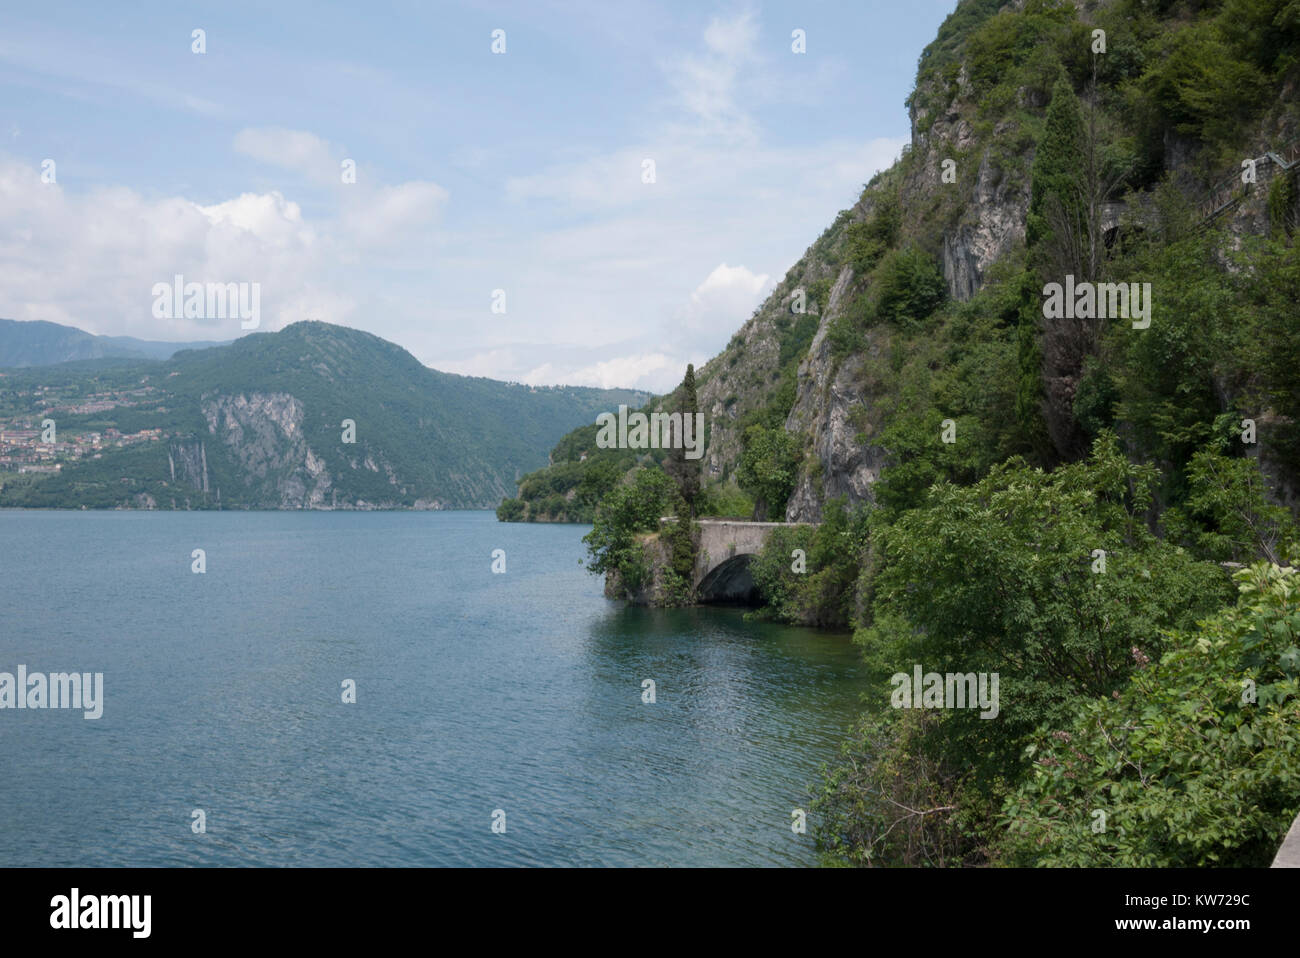 Looking across Lake Iseo from the bike trail that runs alongside it. - Stock Image